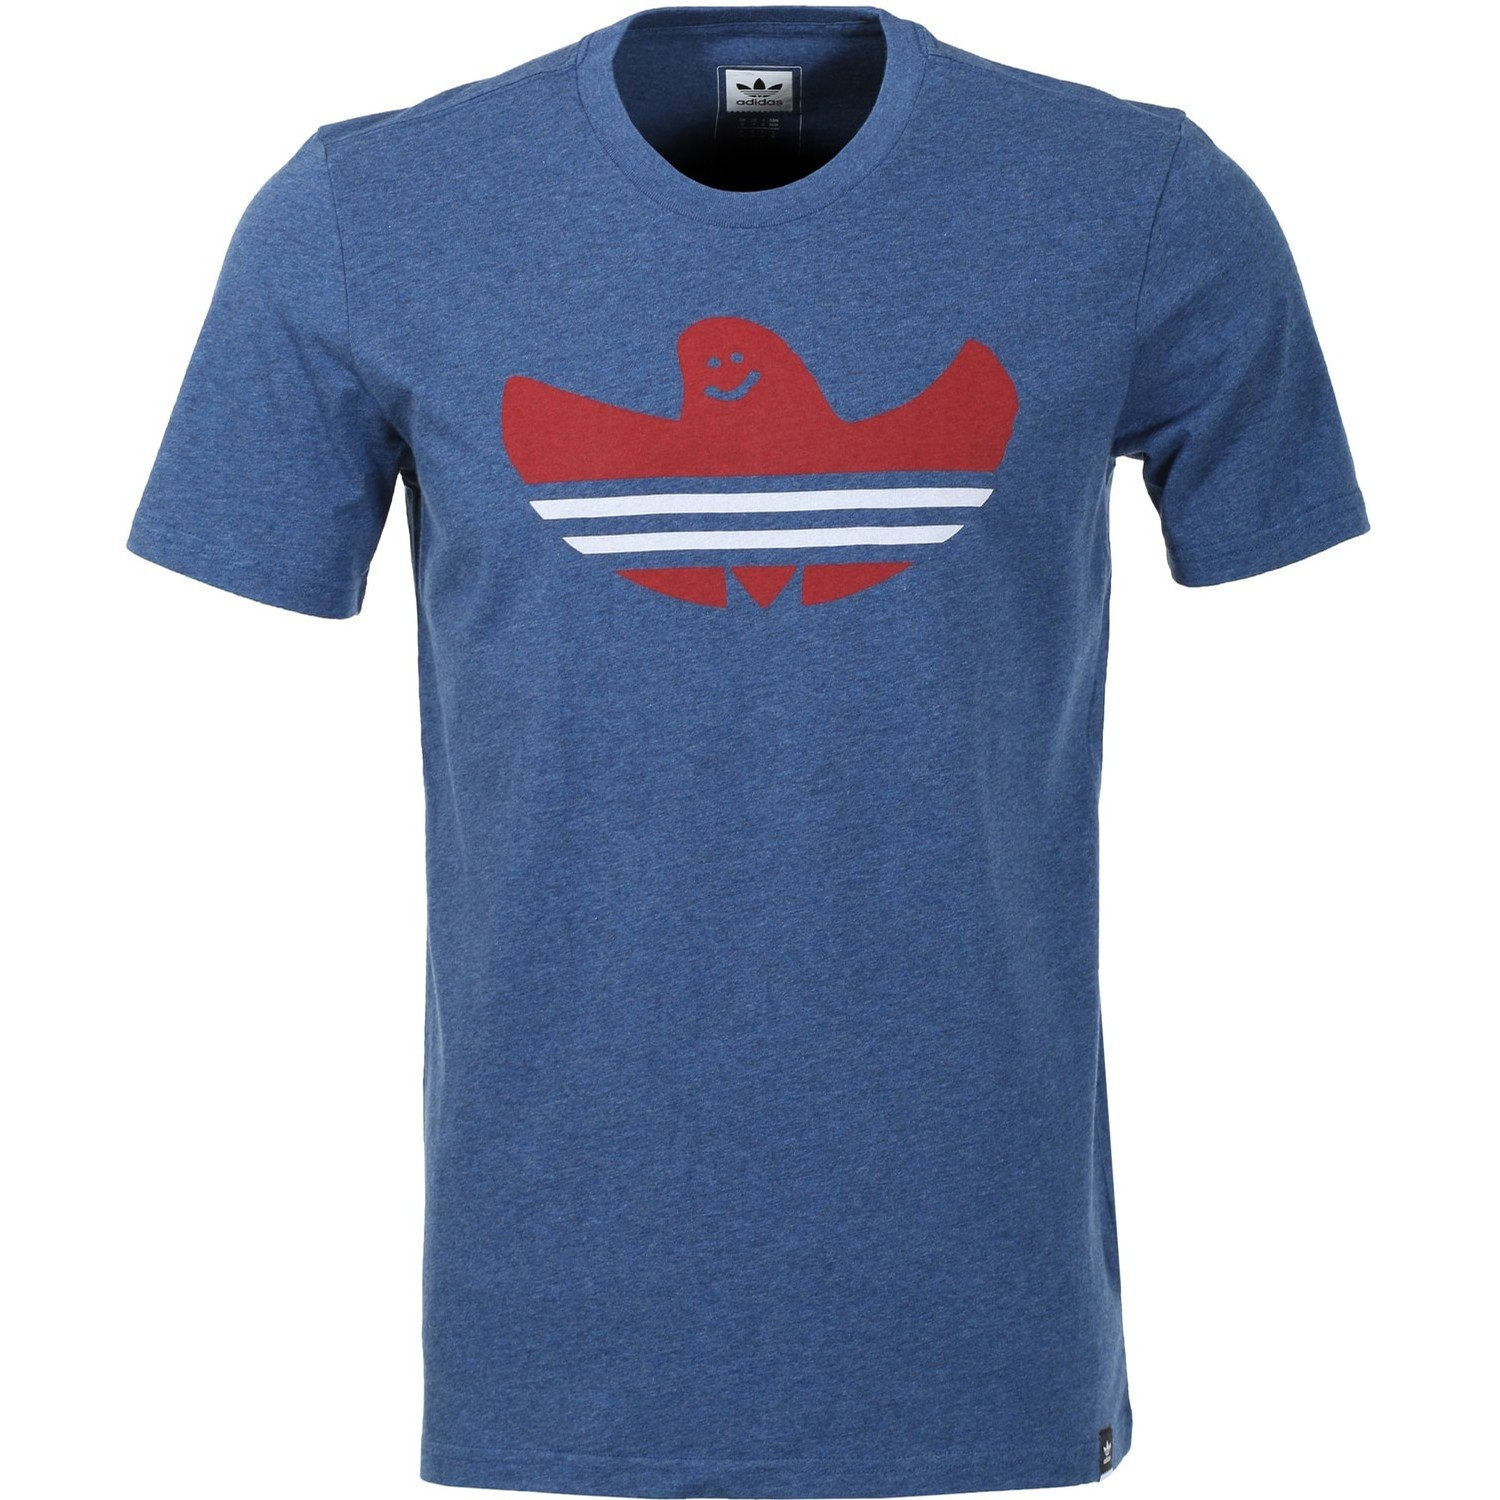 Adidas Nautical Shmoo Tee (Mystery Blue Melange/Mystery Red/White)